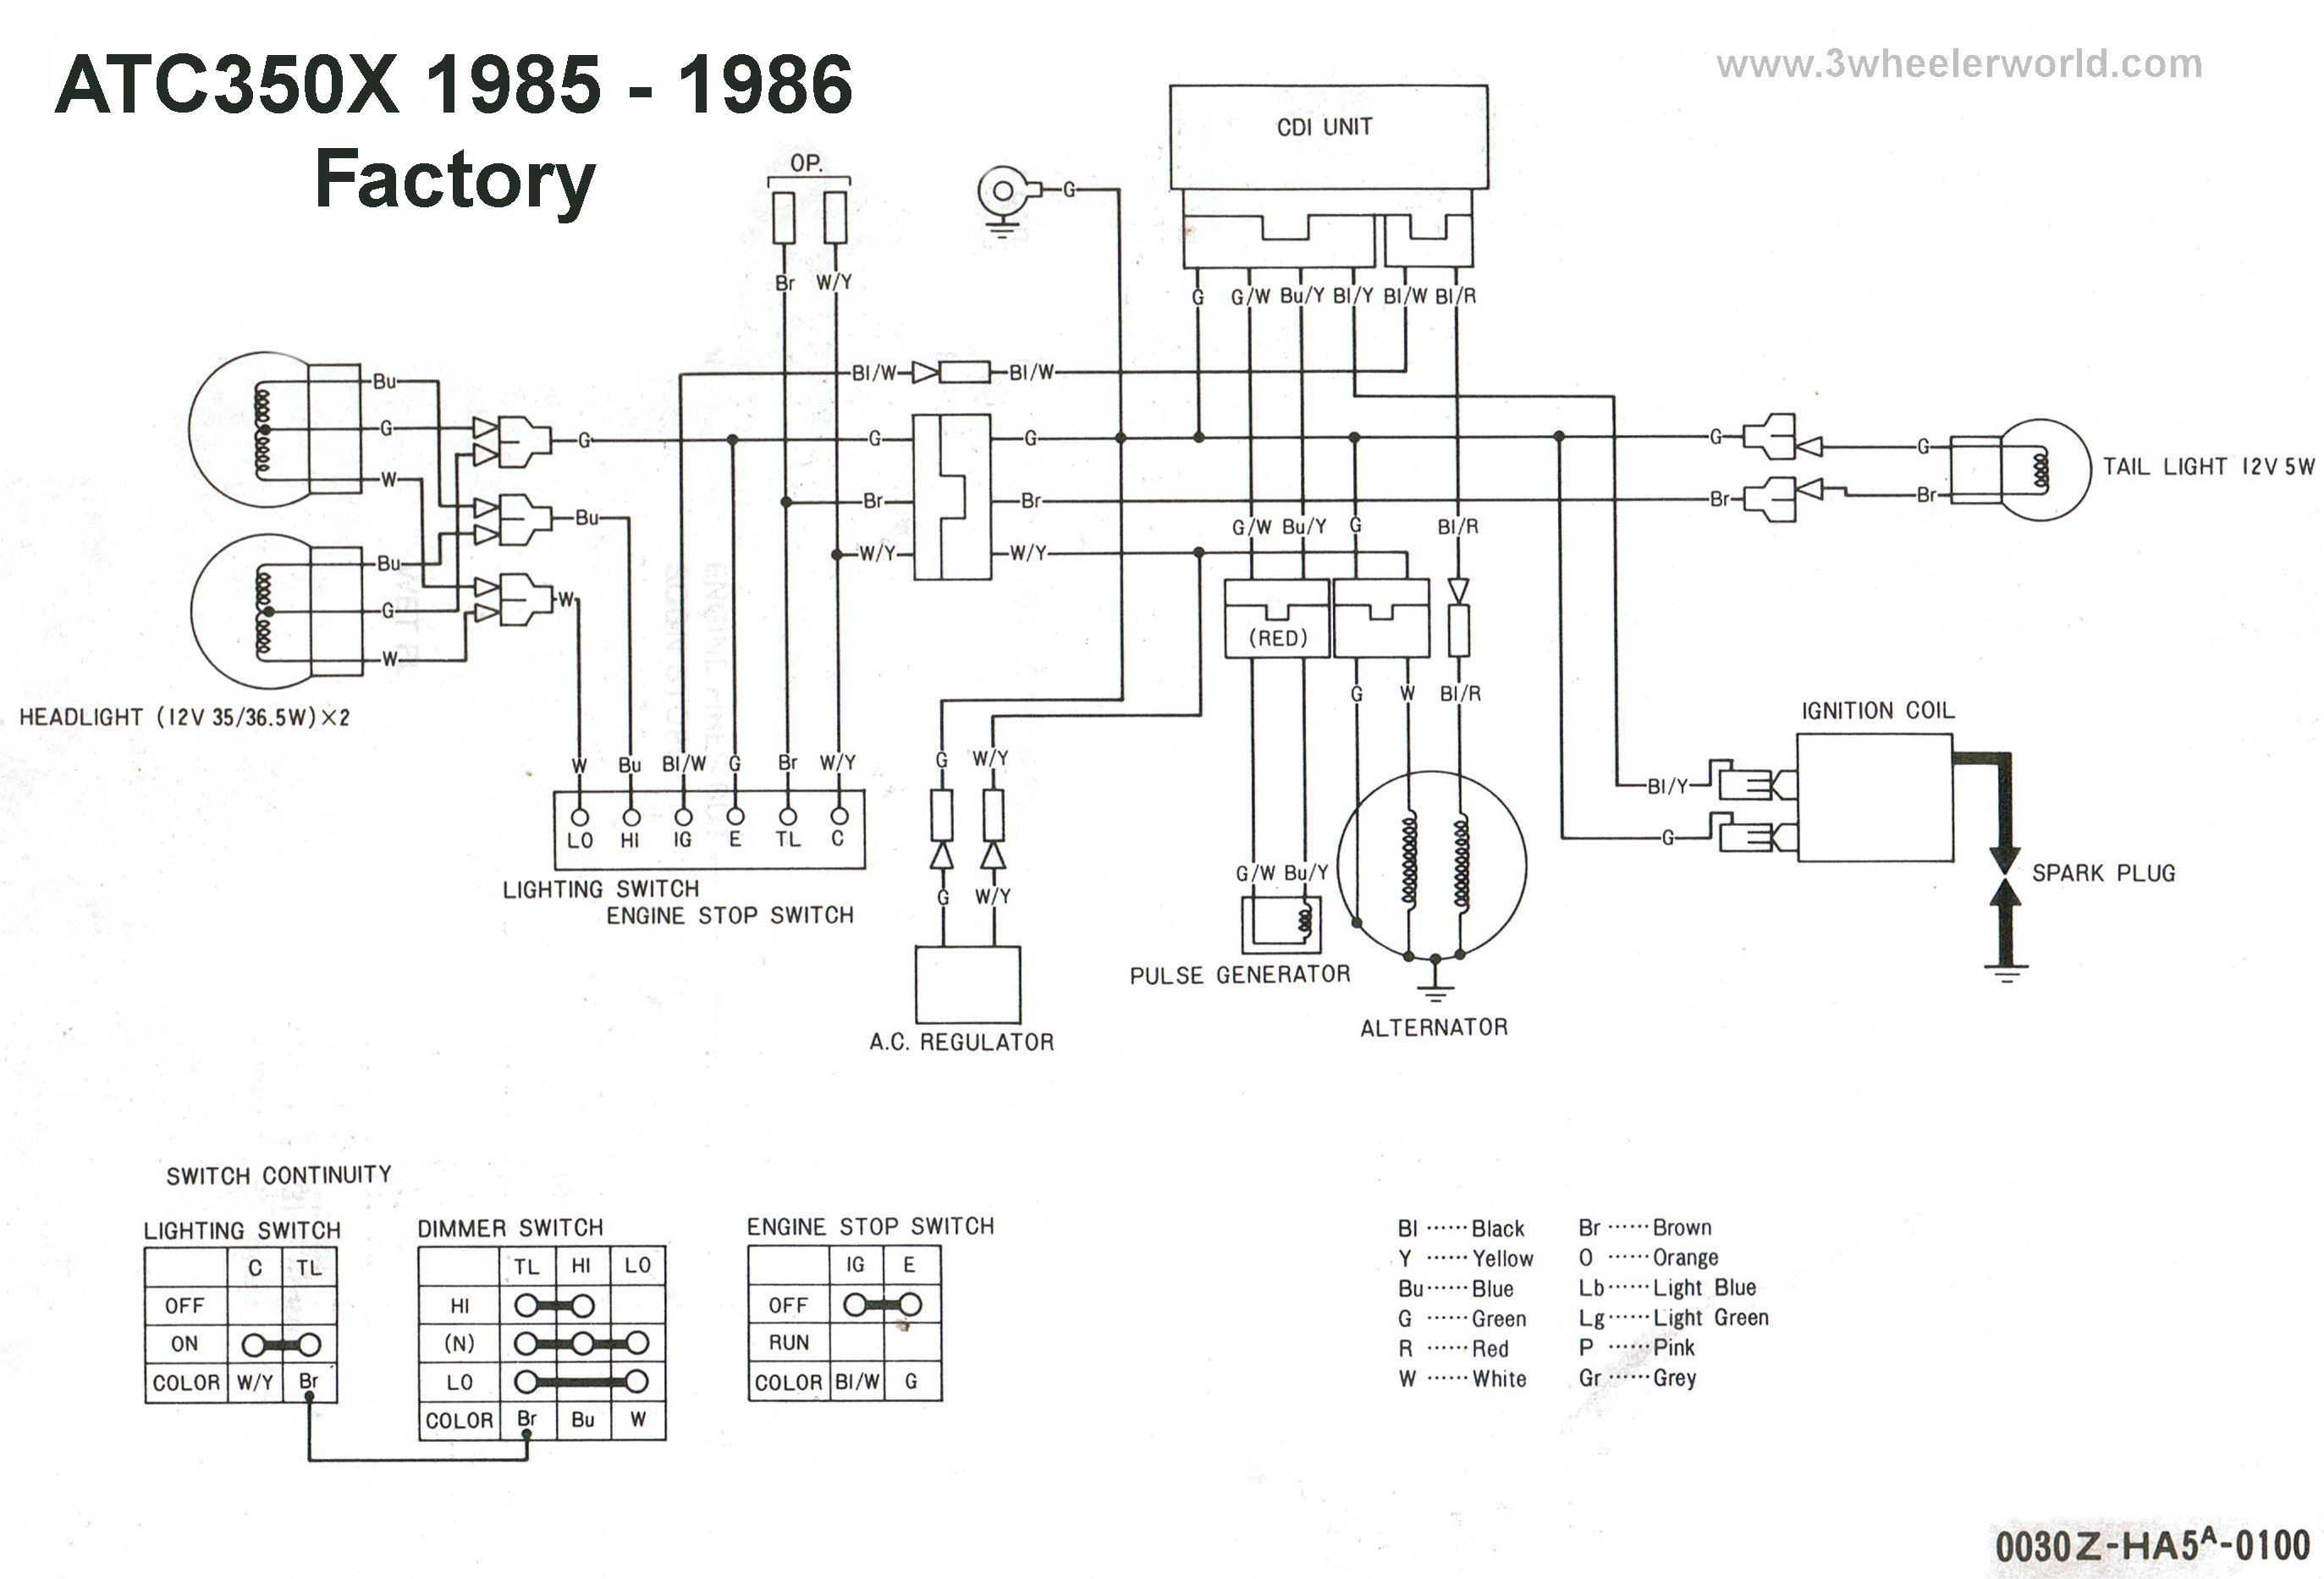 ATC350Xx85Thru86 honda 250x wiring diagram on honda download wirning diagrams honda big red wiring diagram at bayanpartner.co